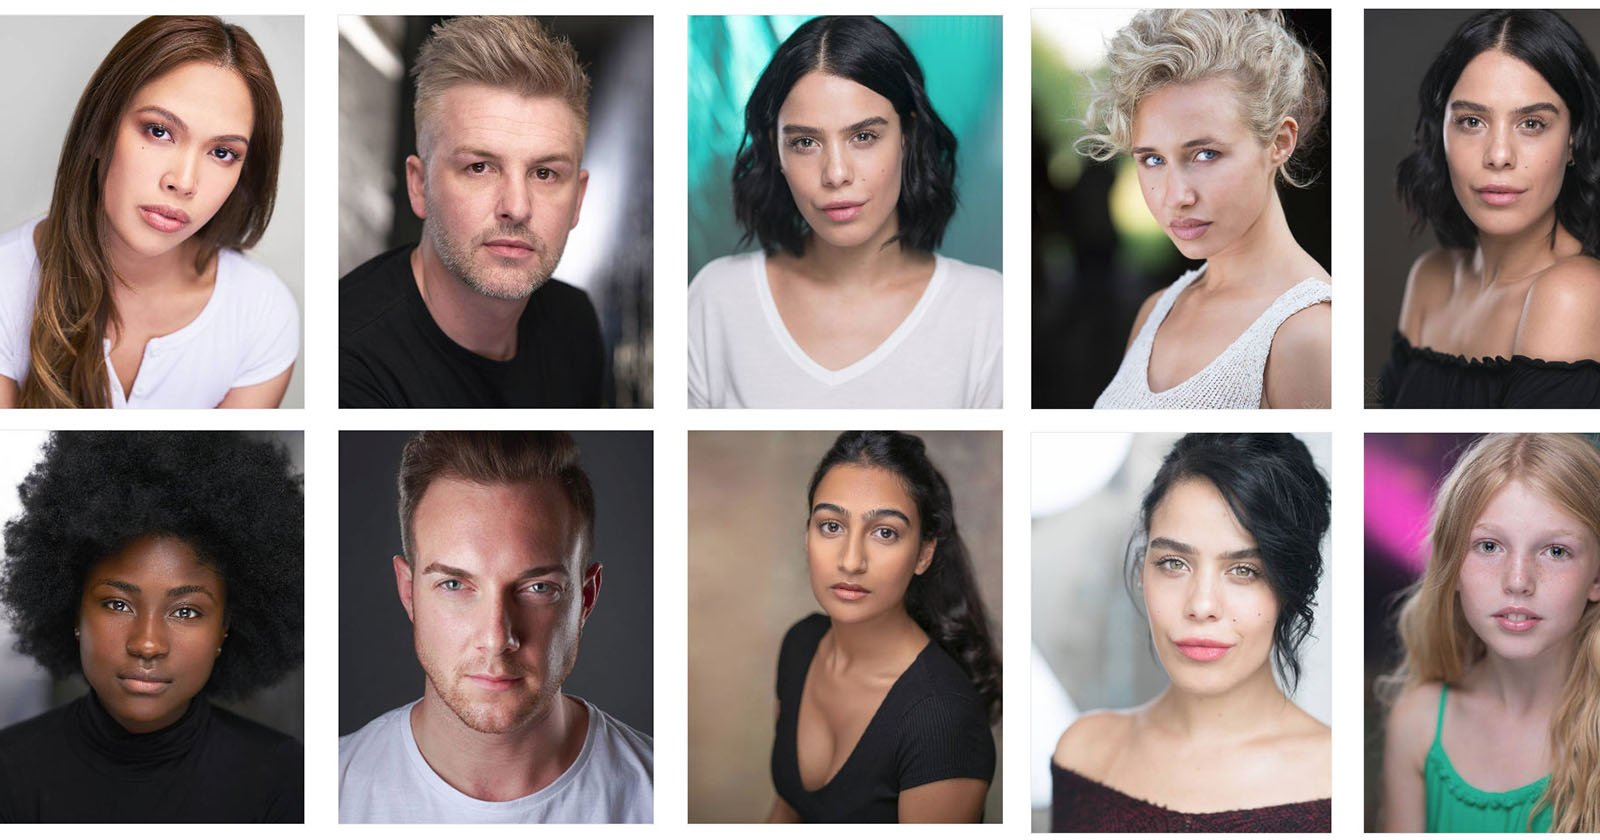 A Photographer's Tips on Preparing to Pose for Actor Headshots